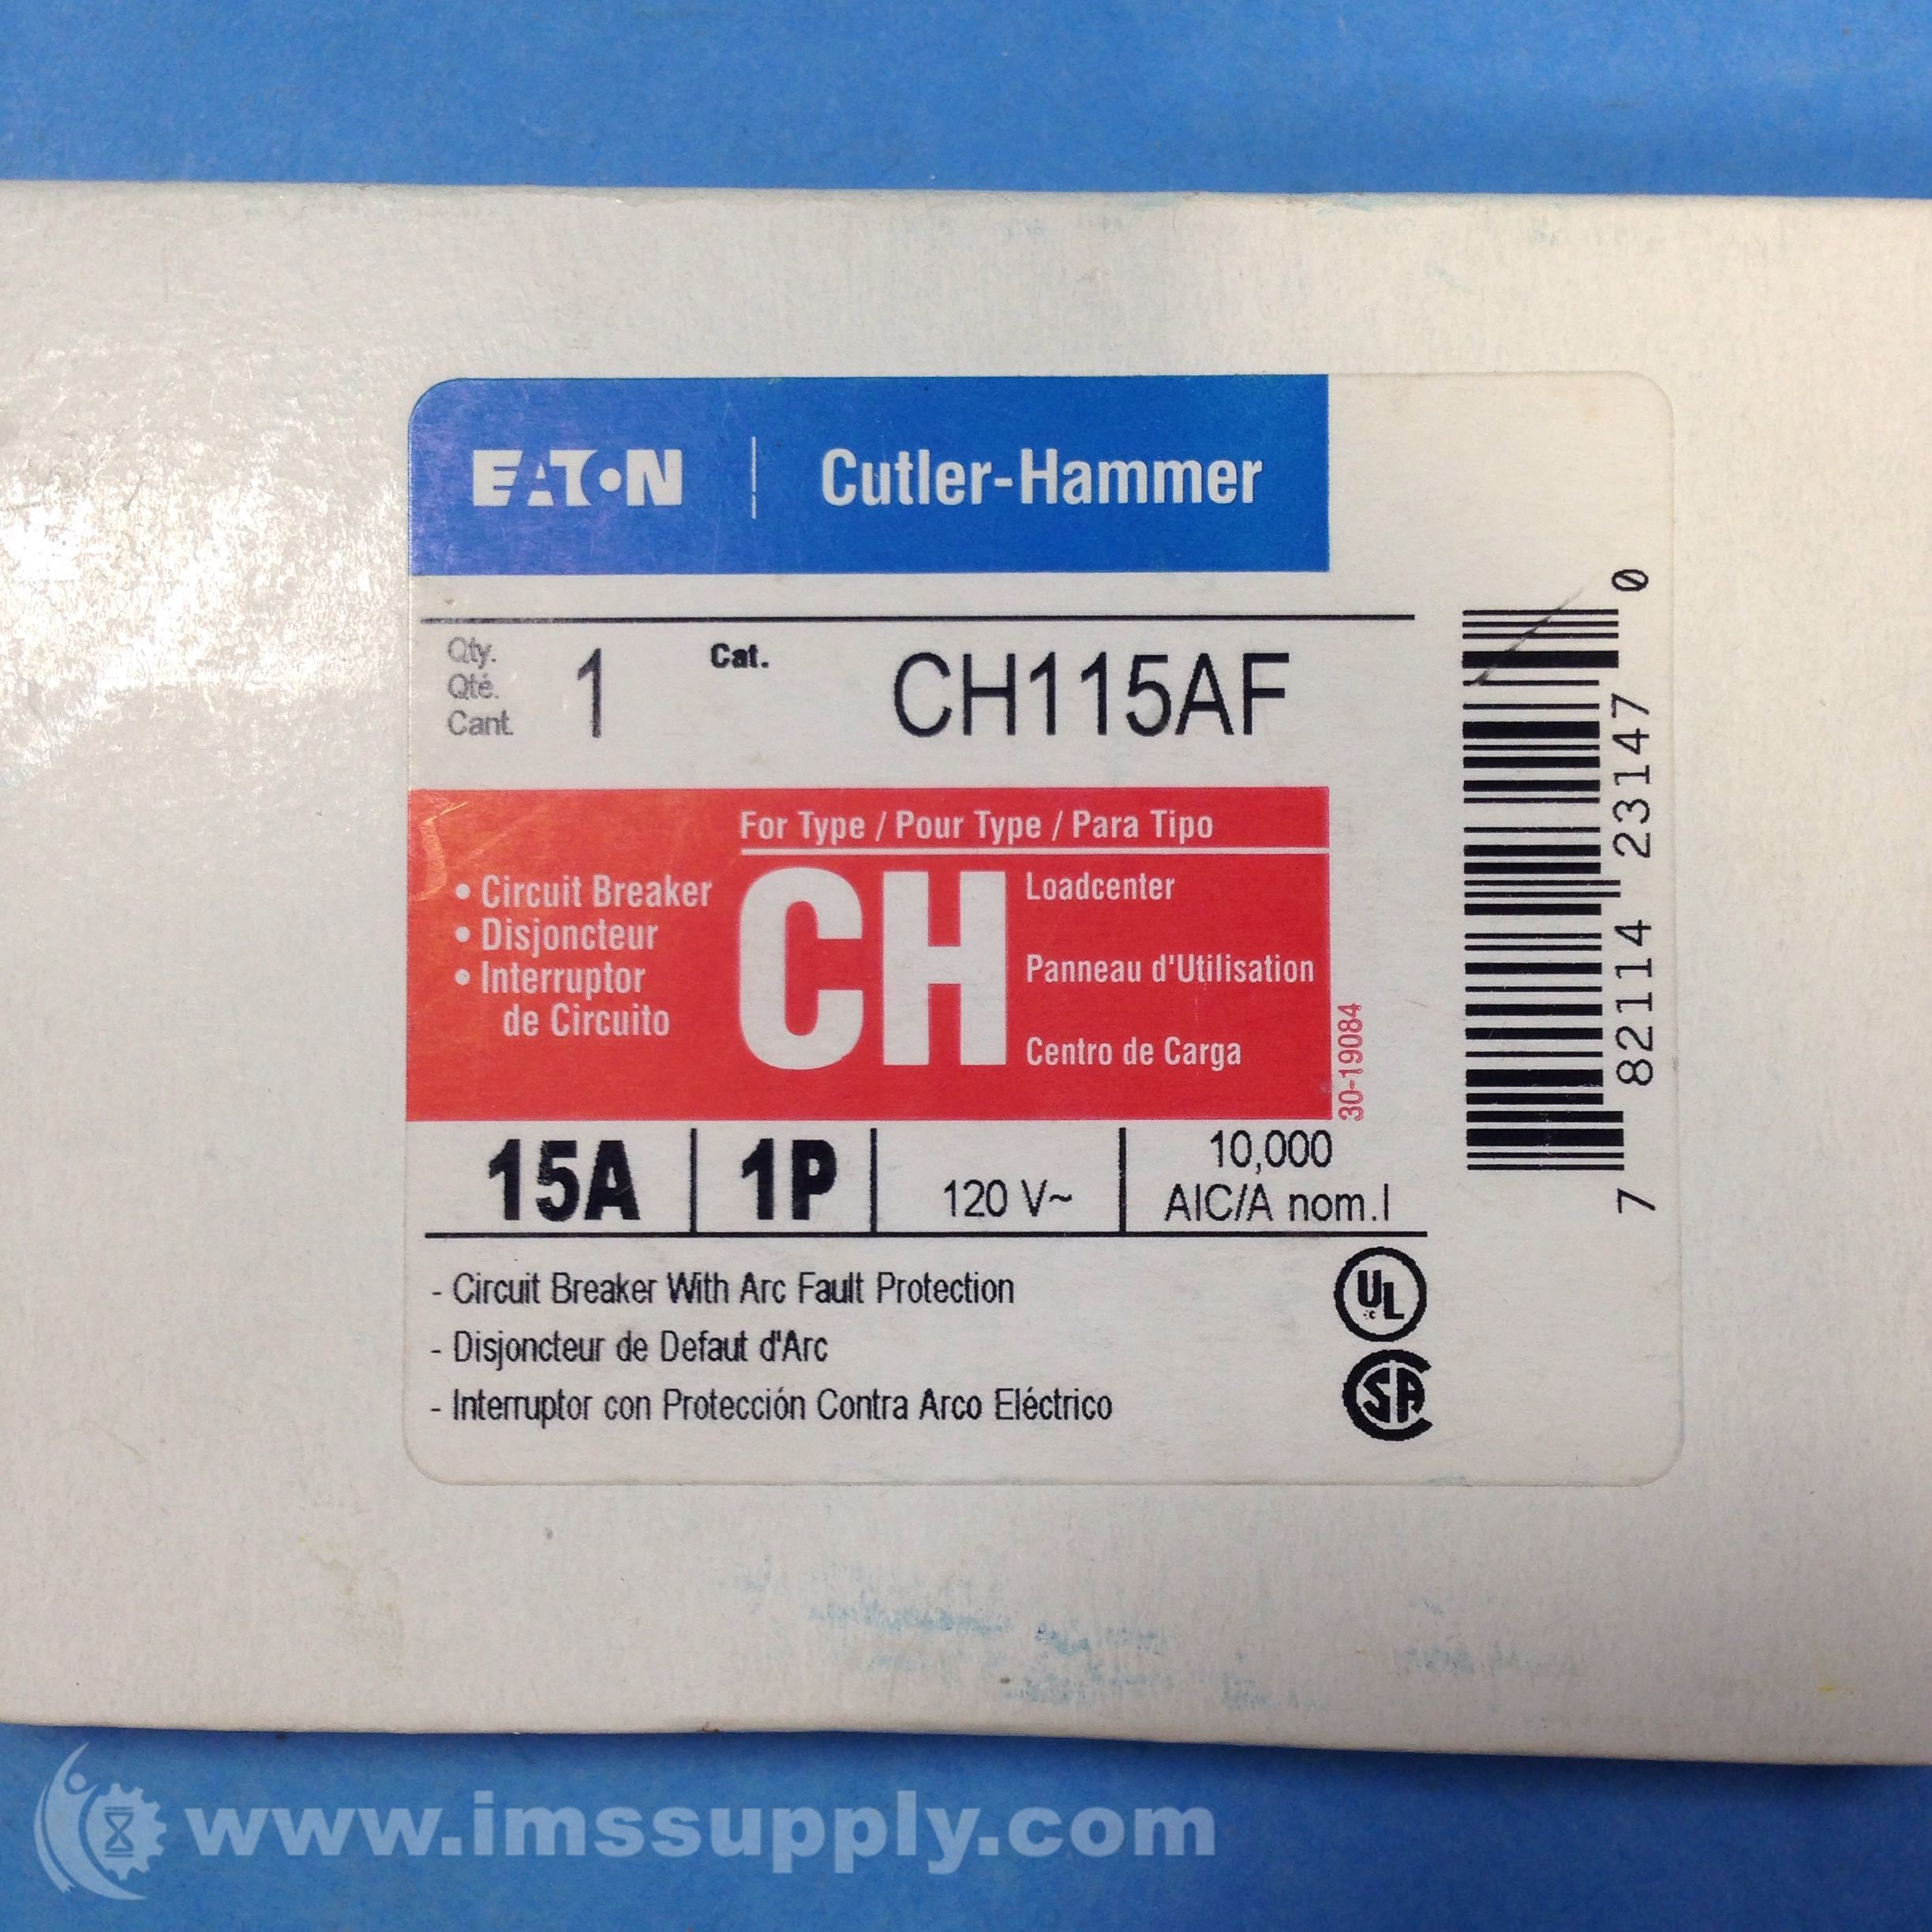 Cutler Hammer Ch115af Circuit Breaker With Arc Fault Protection Identification Labels Ims Supply